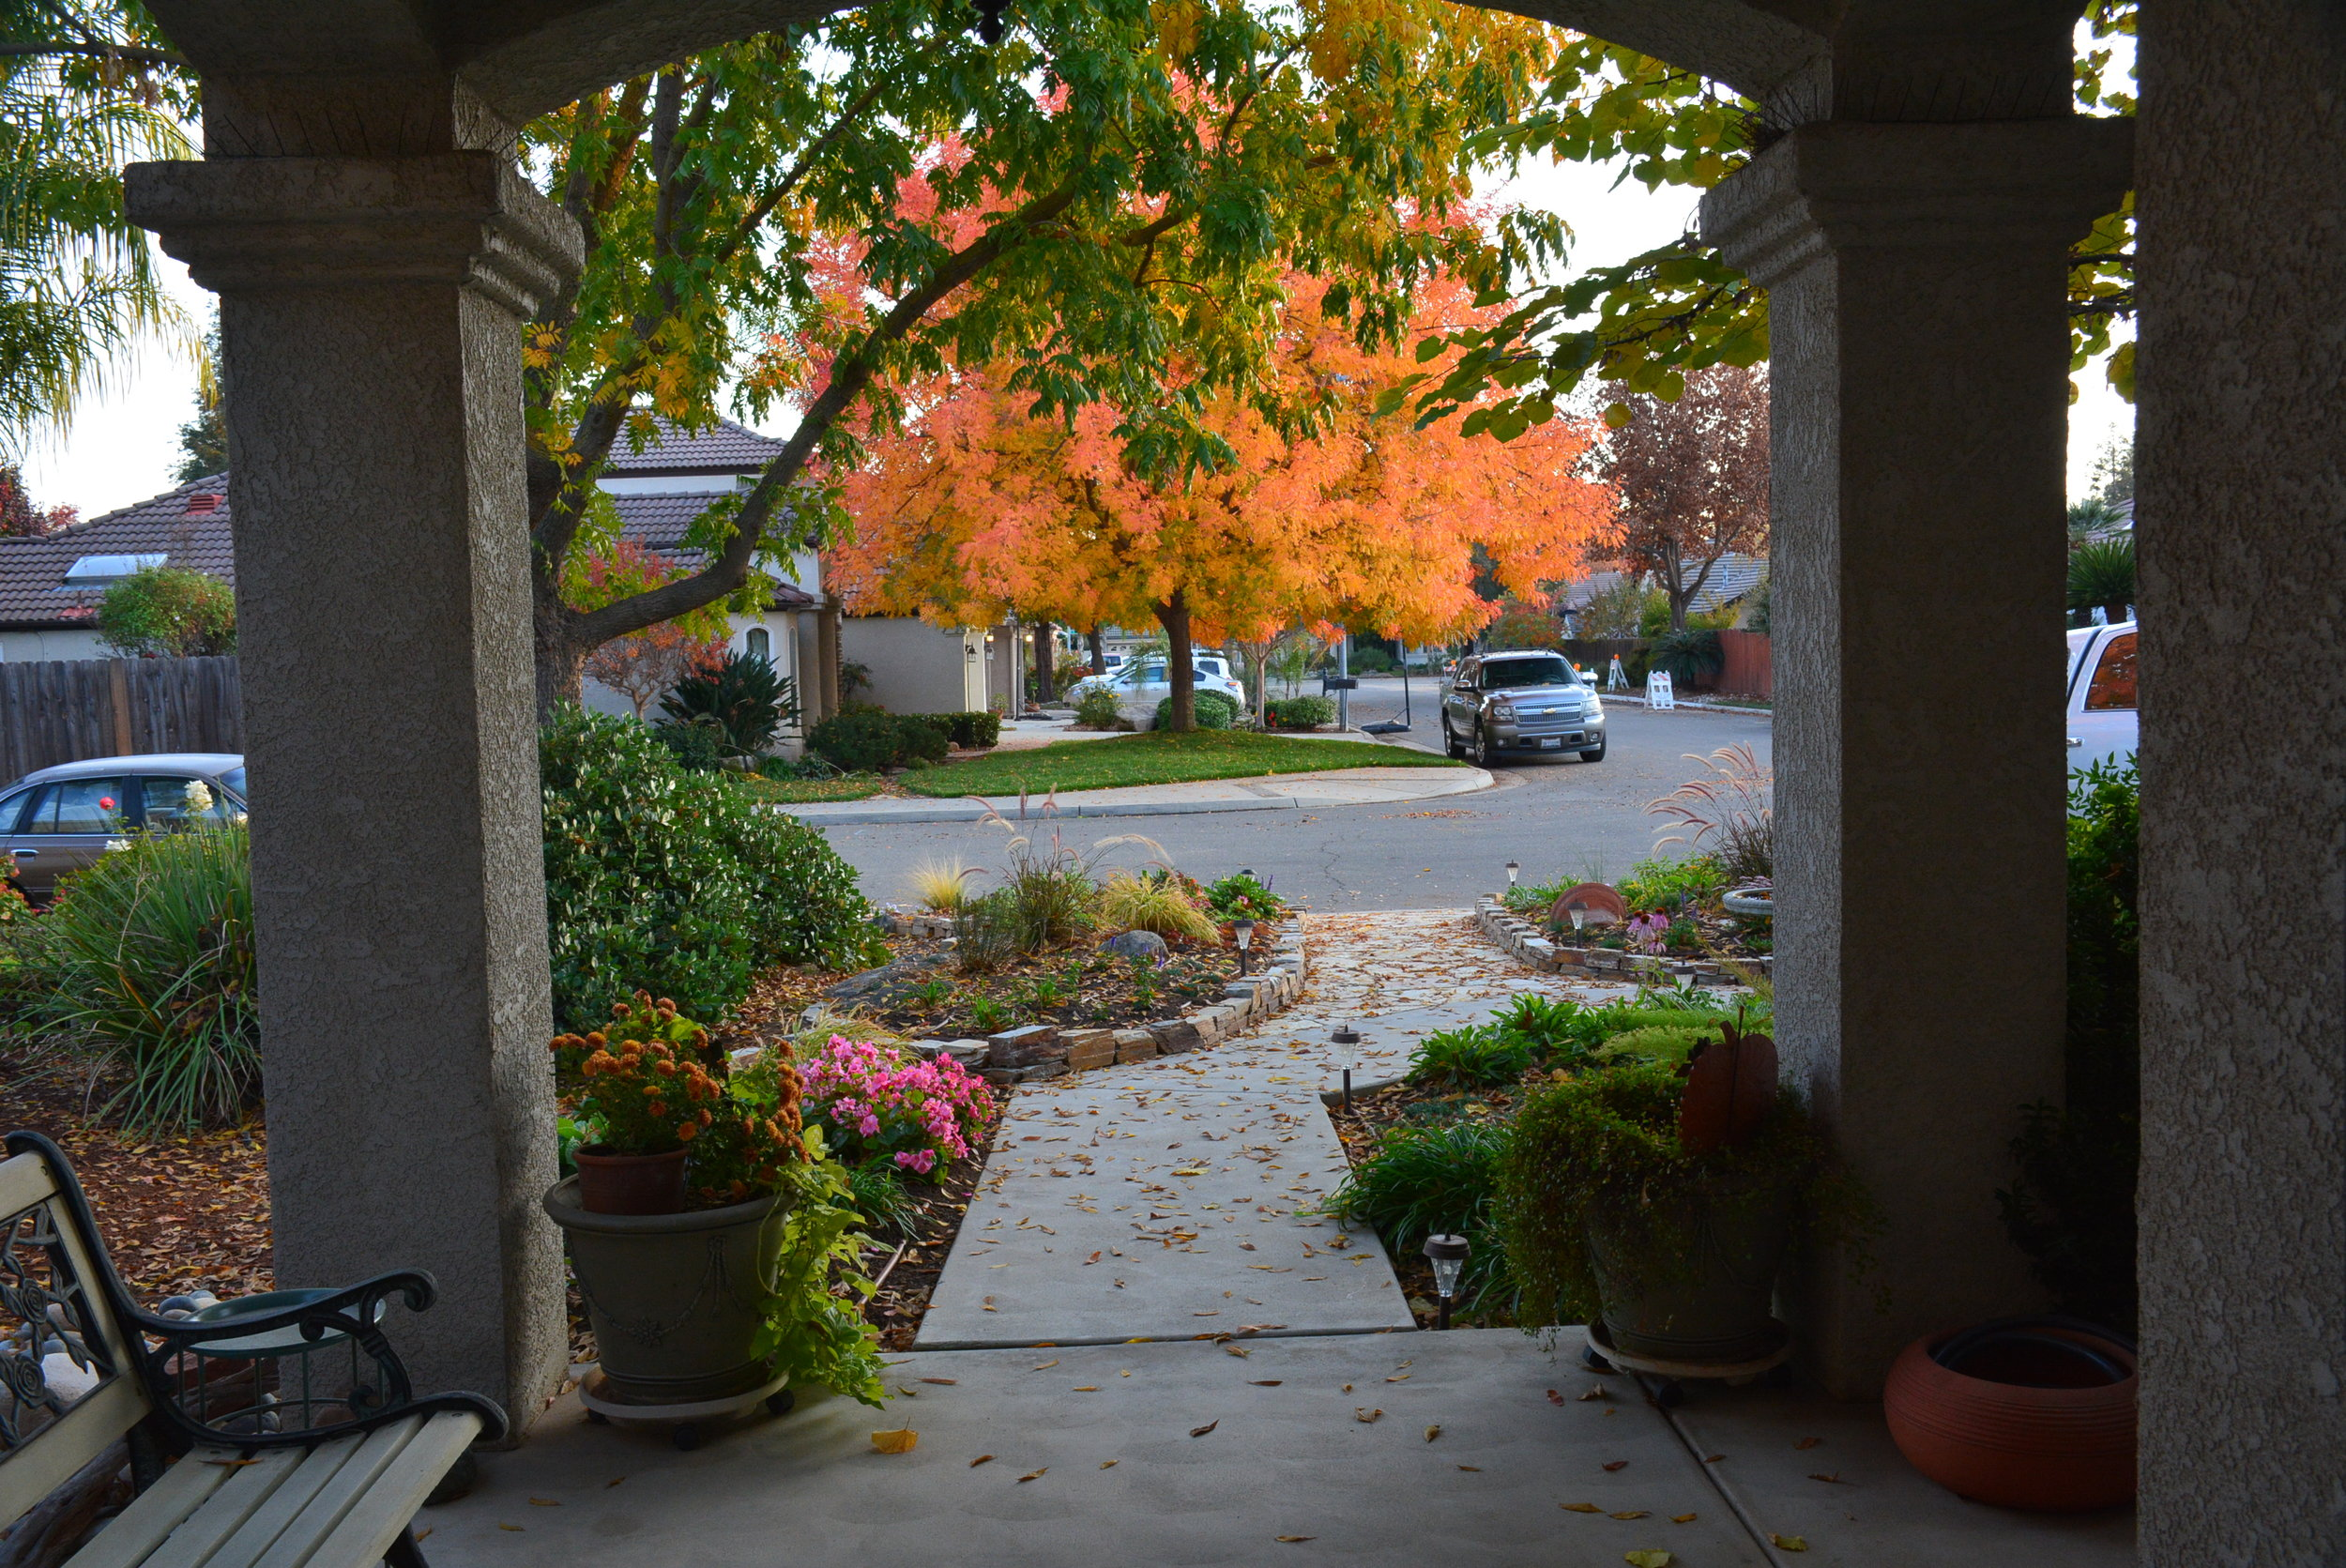 11/19/17- The view from our front door